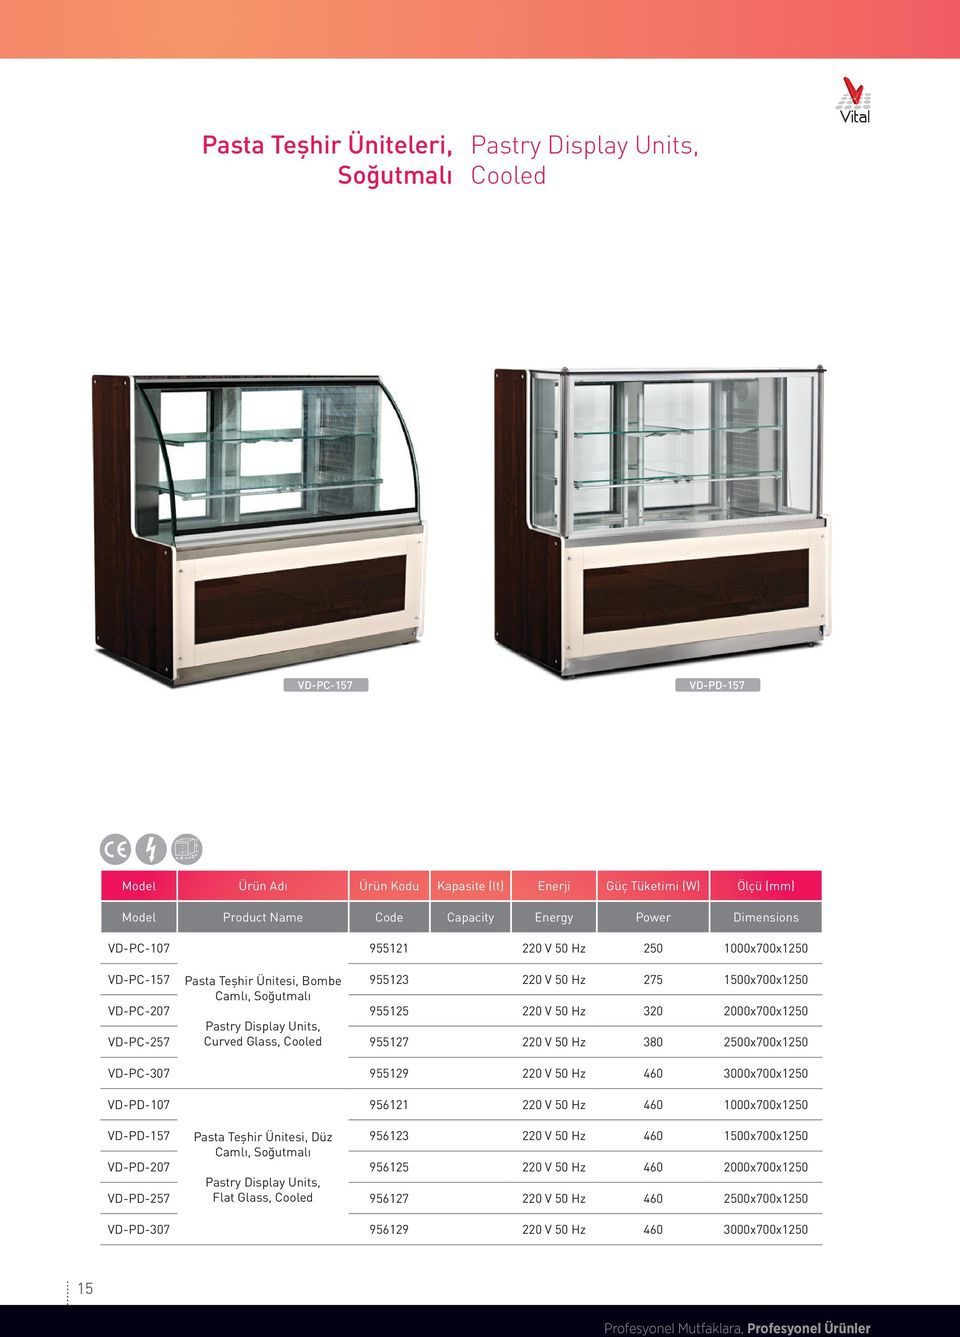 VD-PC-257 Pastry Display Units, Curved Glass, Cooled 955127 220 V 50 Hz 380 2500x700x1250 VD-PC-307 955129 220 V 50 Hz 460 3000x700x1250 VD-PD-107 956121 220 V 50 Hz 460 1000x700x1250 VD-PD-157